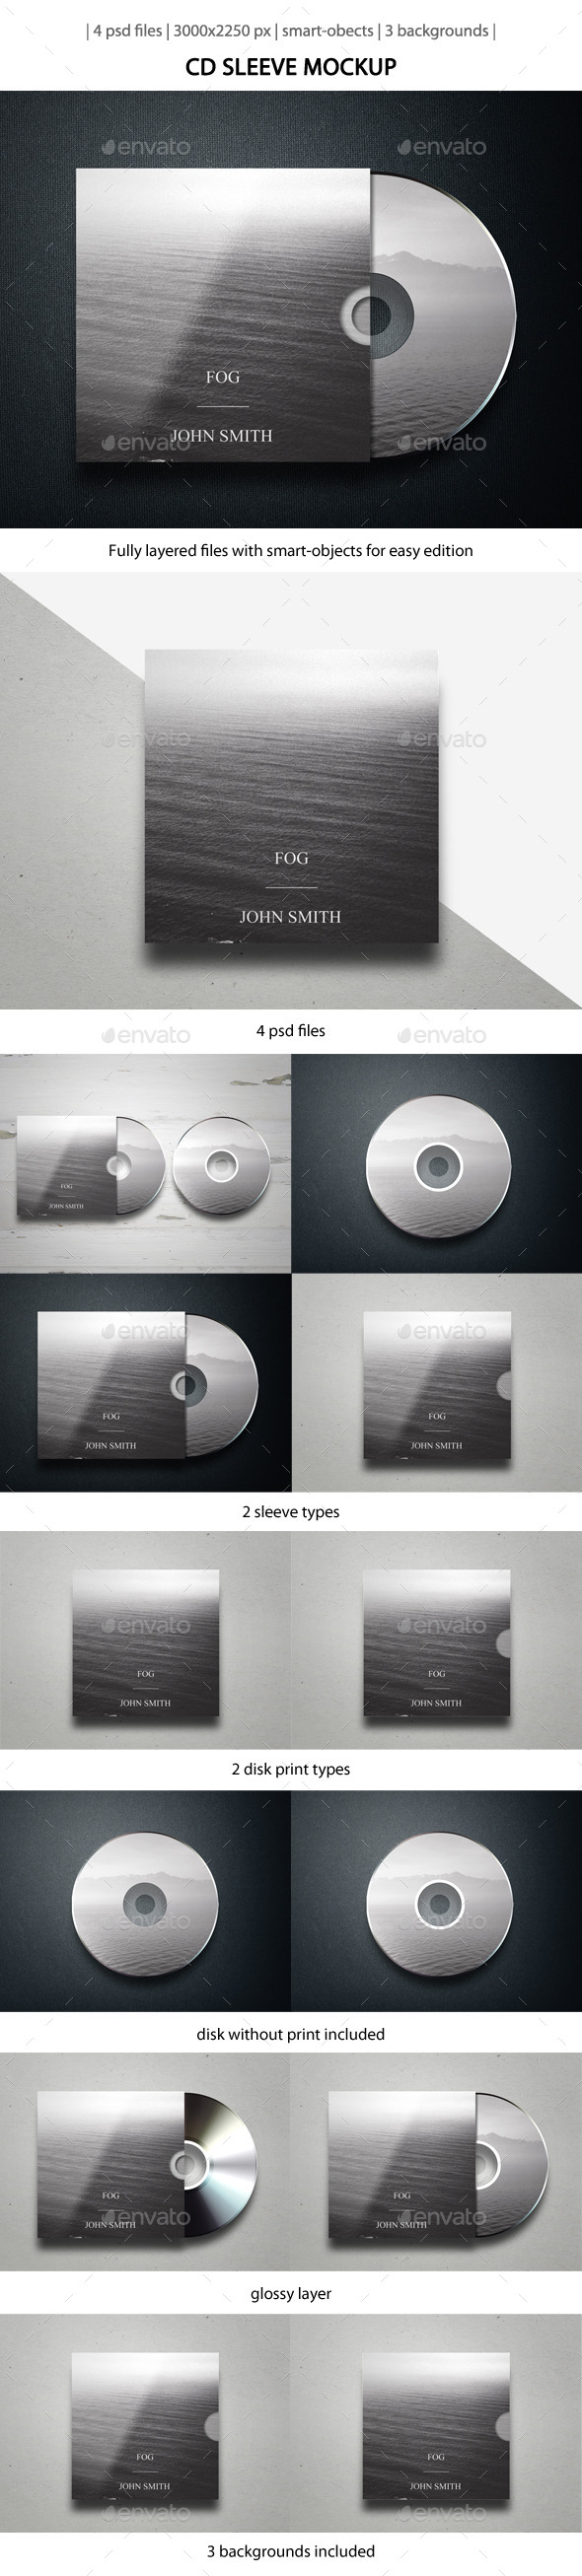 GraphicRiver CD Sleeve Mockup 10266317